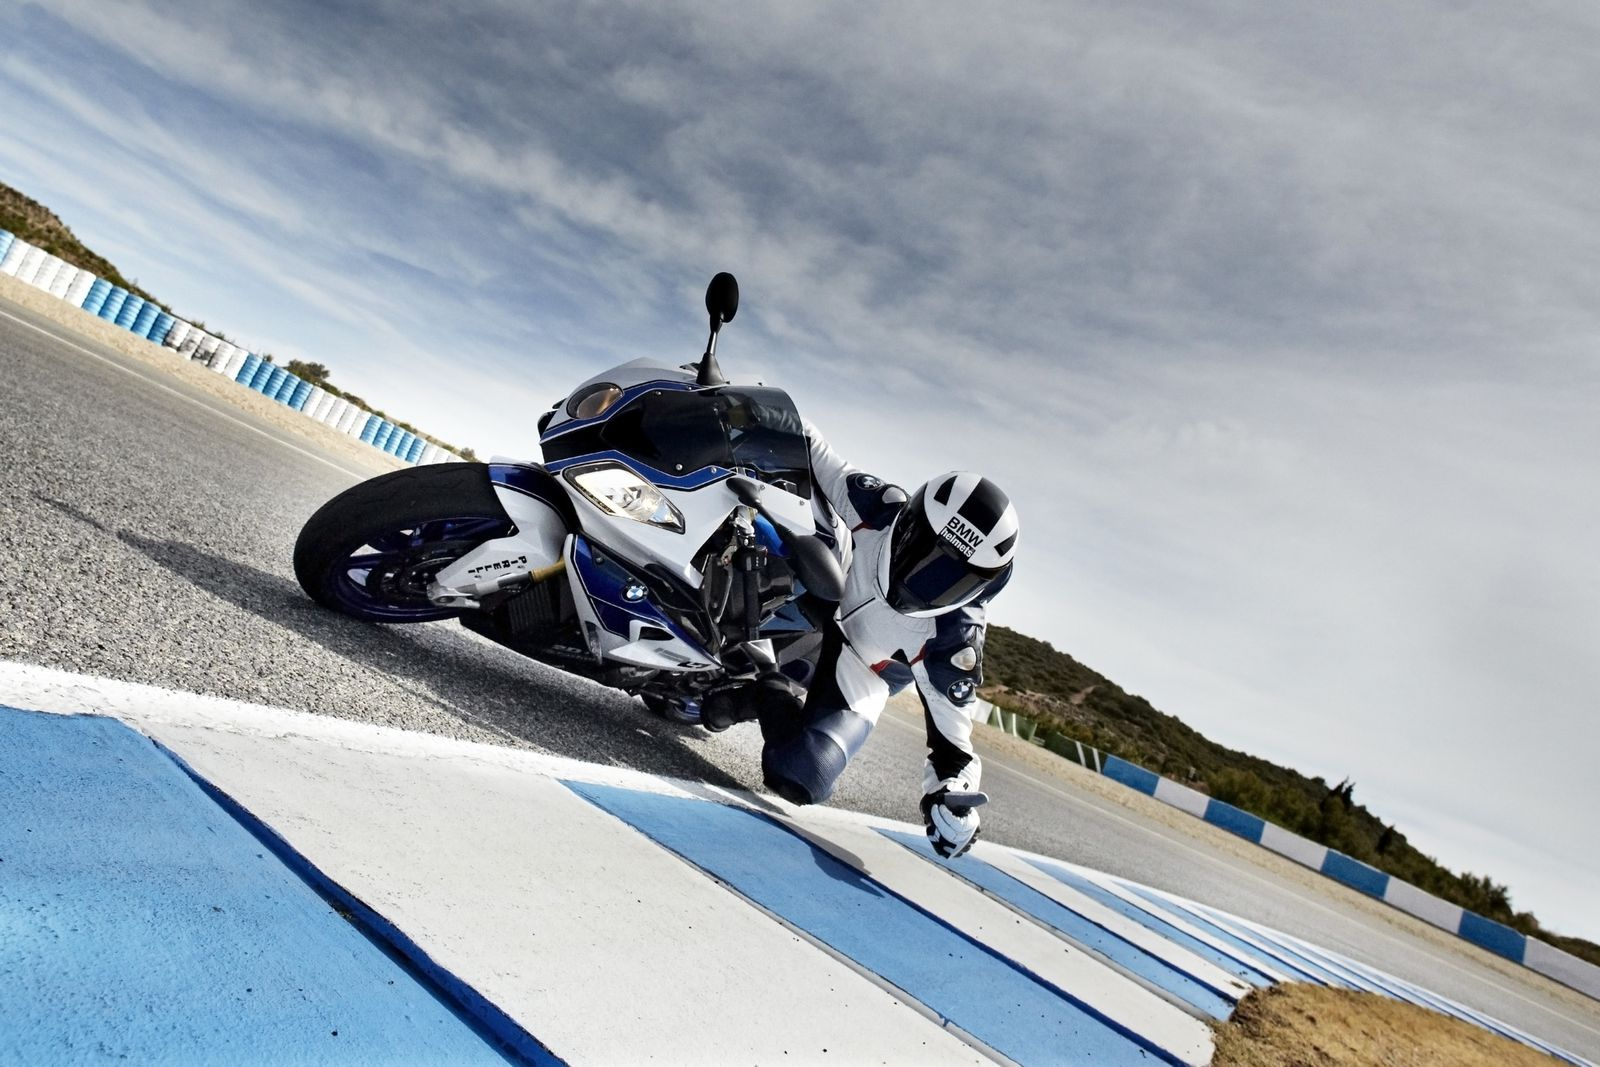 moto bmw the bmw f800 gt 2013 the bmw s1000rr hp4. Black Bedroom Furniture Sets. Home Design Ideas